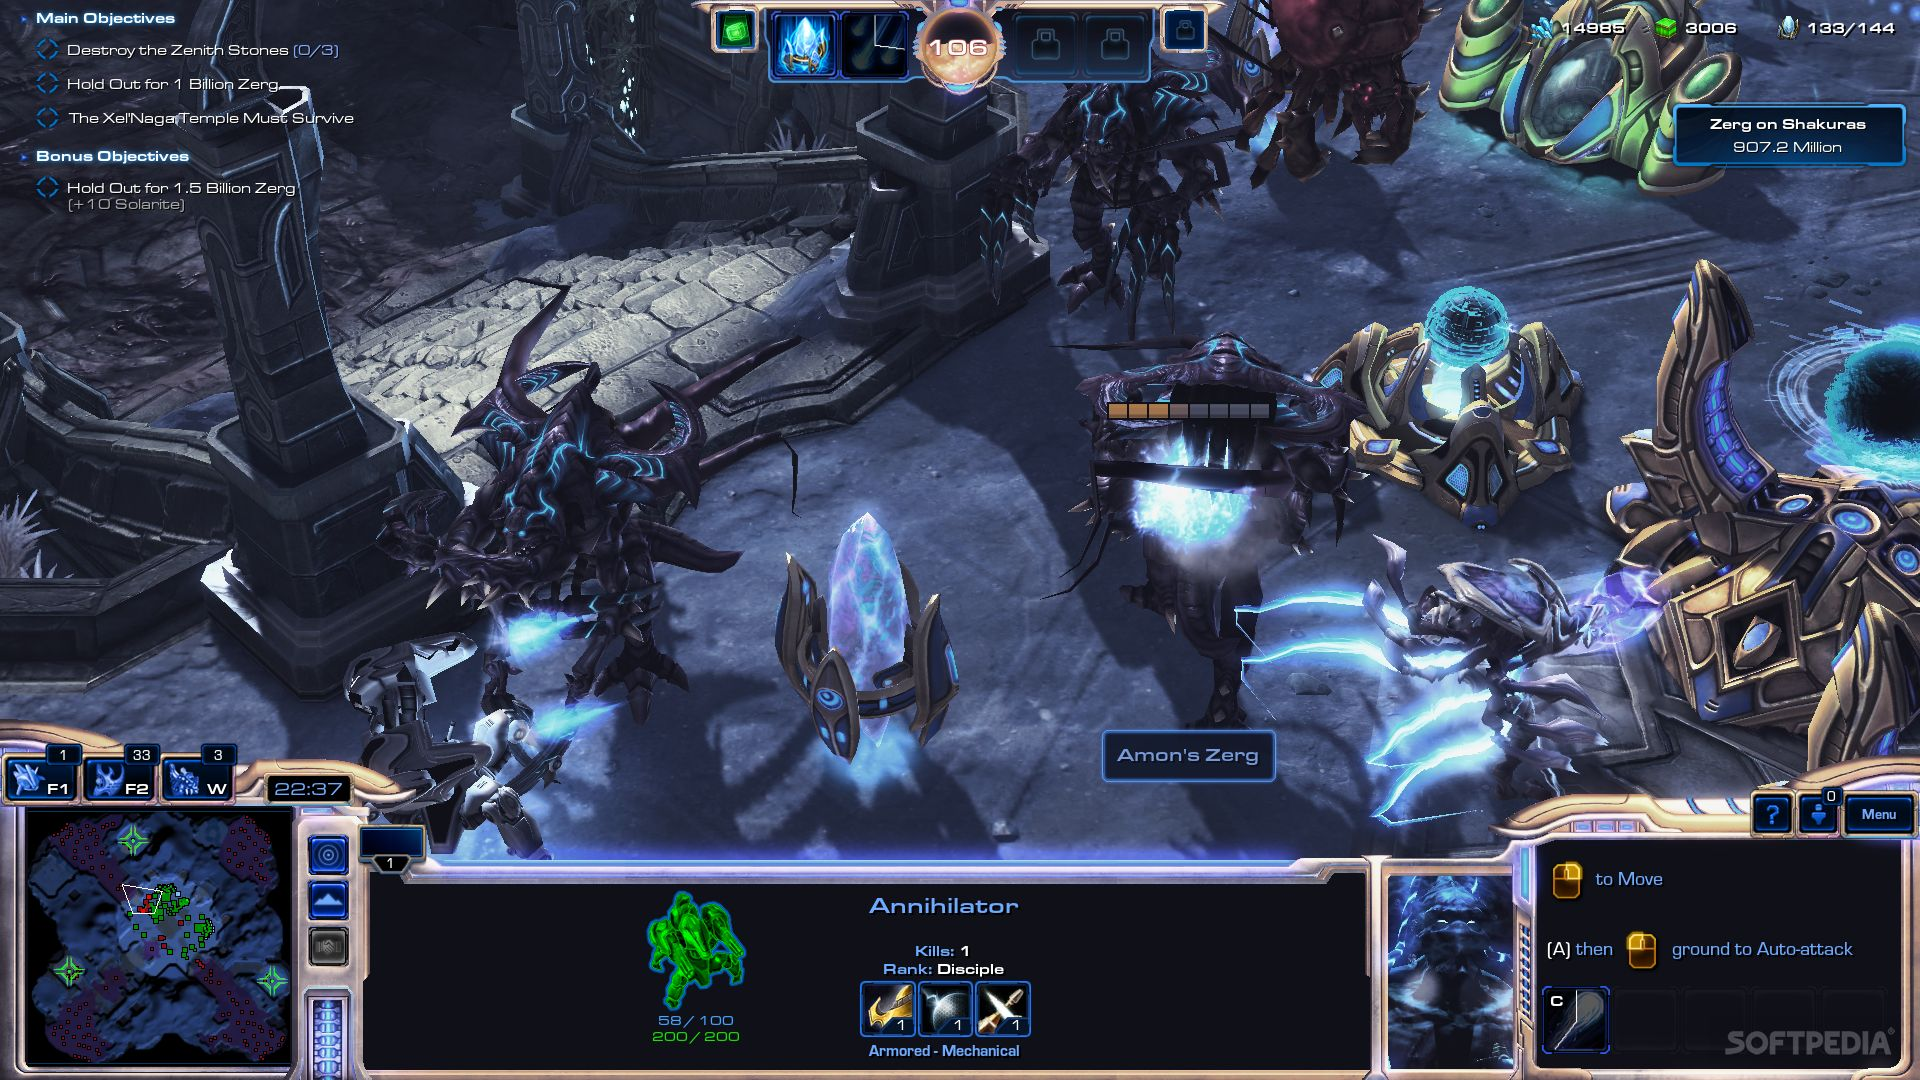 starcraft 2 legacy of the void review pc 496002 15 - Starcraft 2 - Legacy of the Void Review (PC)